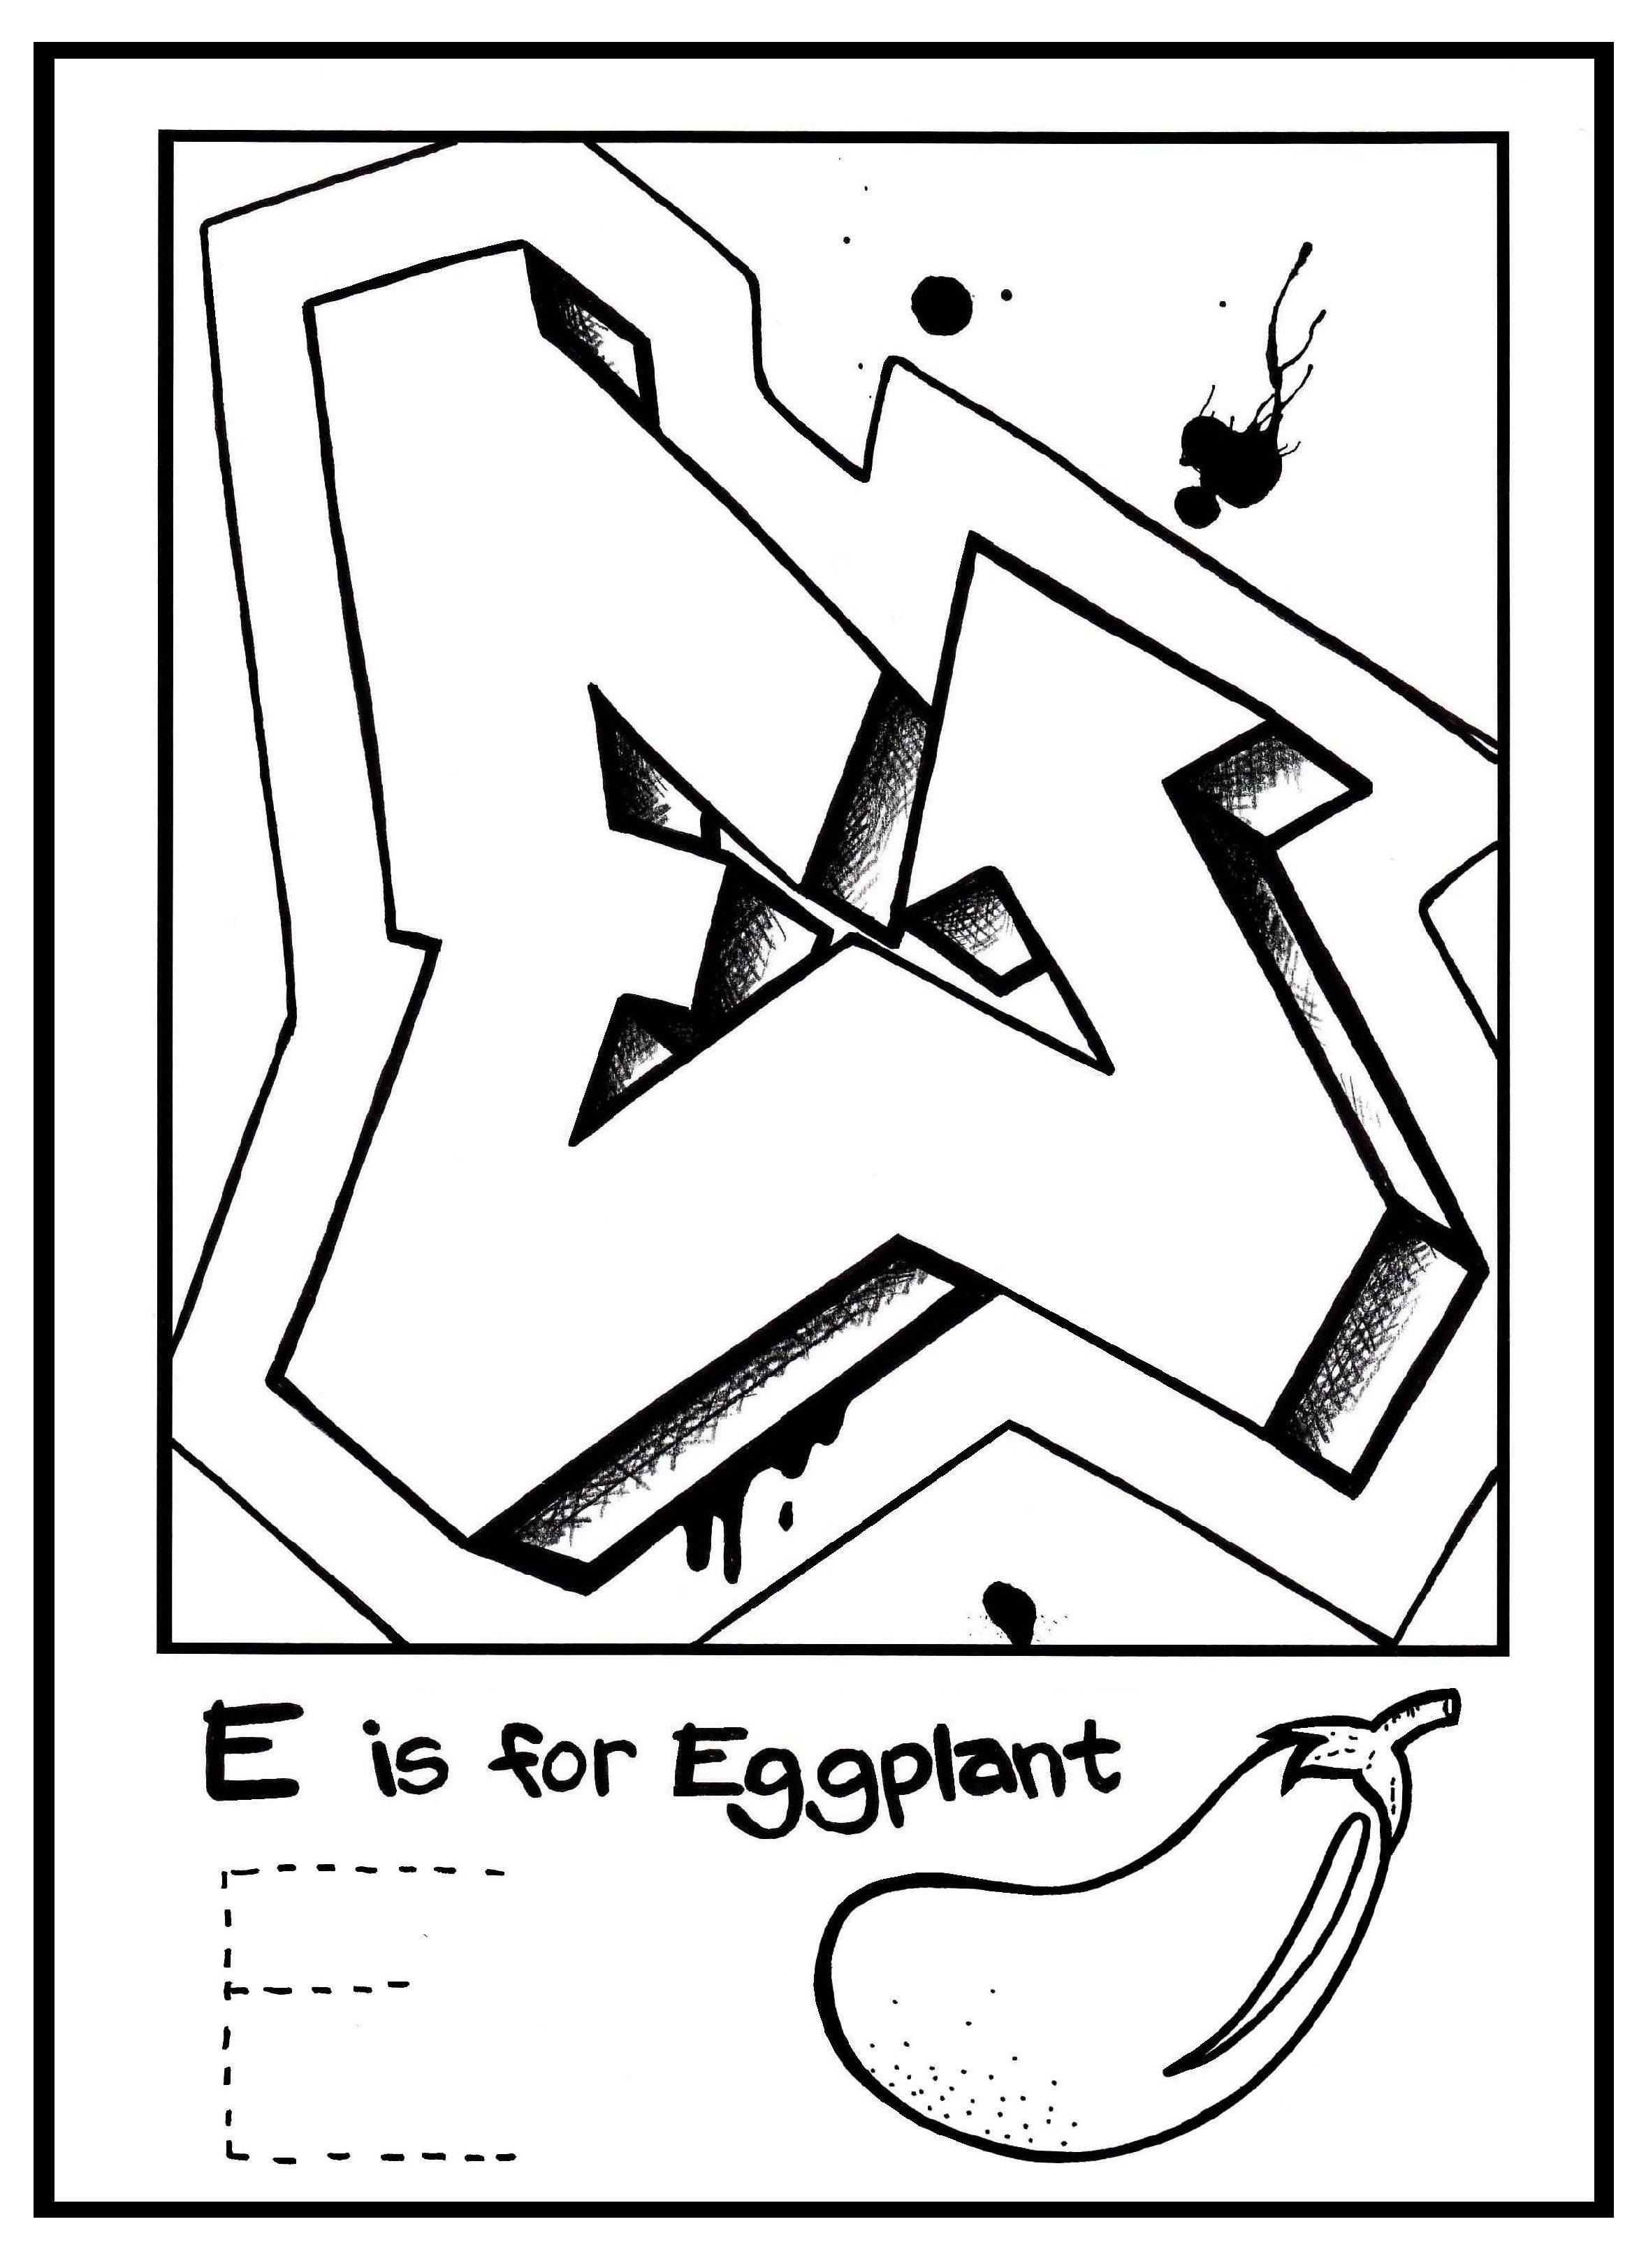 G Is For Graffiti Alphabet Coloring Book Free Coloring Page Learn To Draw Graffiti Graffiti Lettering Lettering Alphabet Graffiti Alphabet